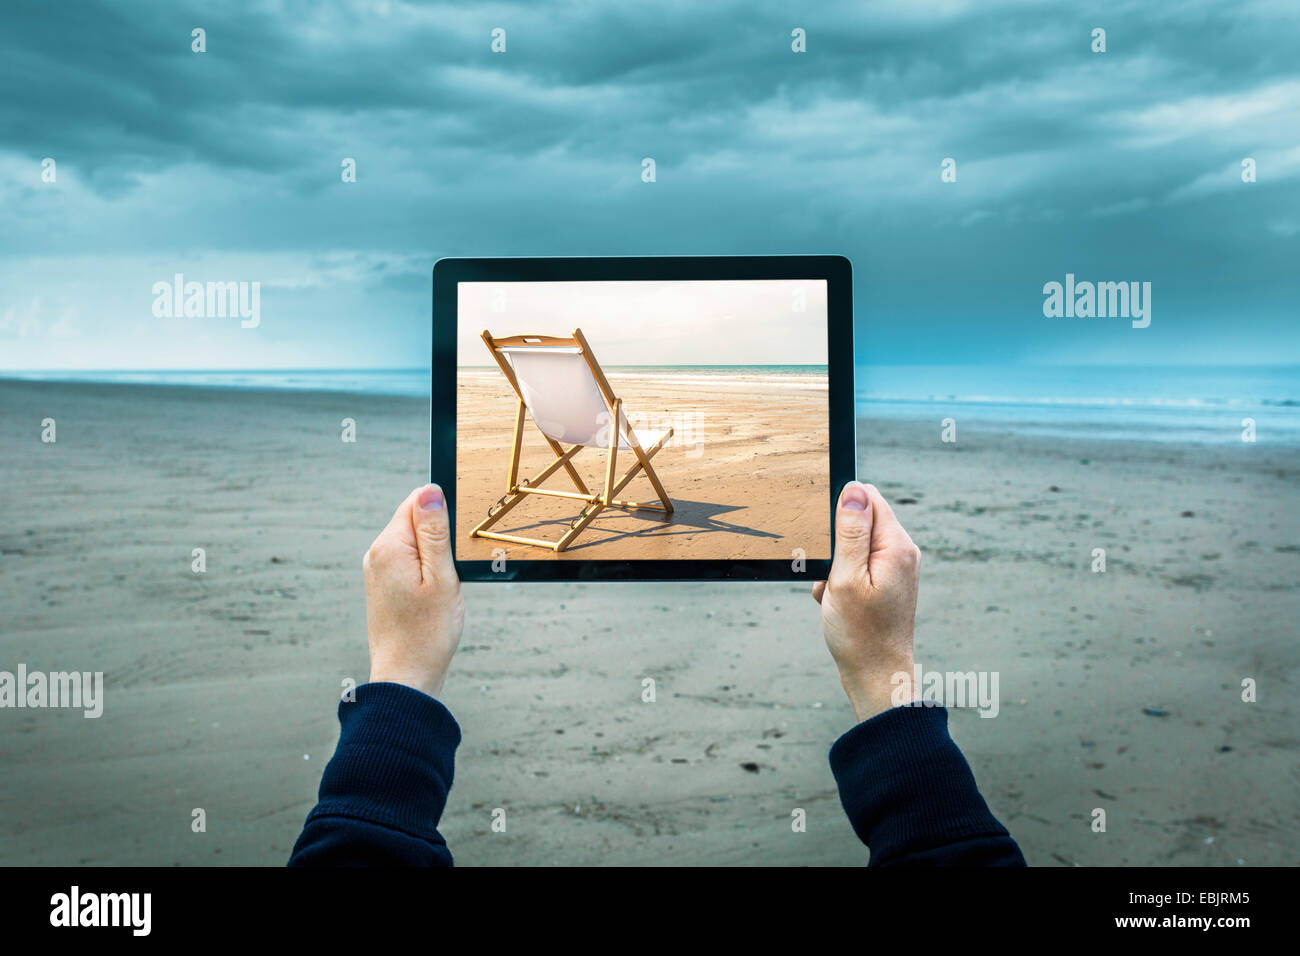 Mature woman on cloudy beach, holding digital tablet showing sunny beach scene, focus on hands and laptop - Stock Image